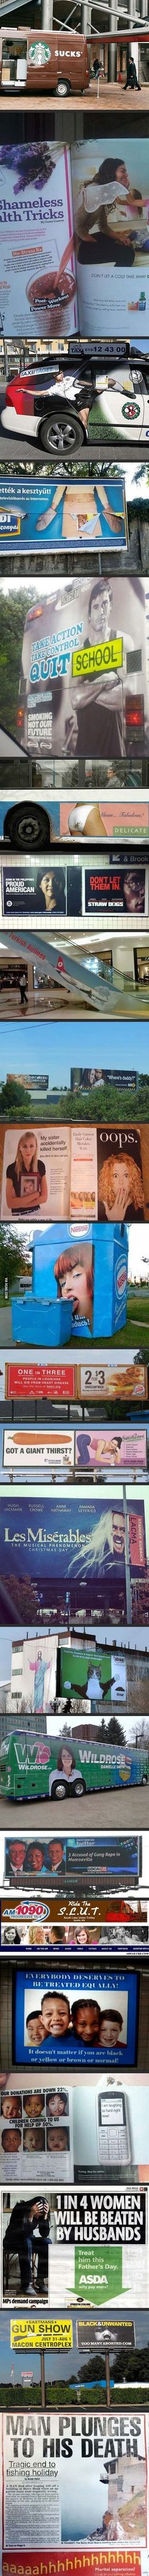 Best Advertising Placements